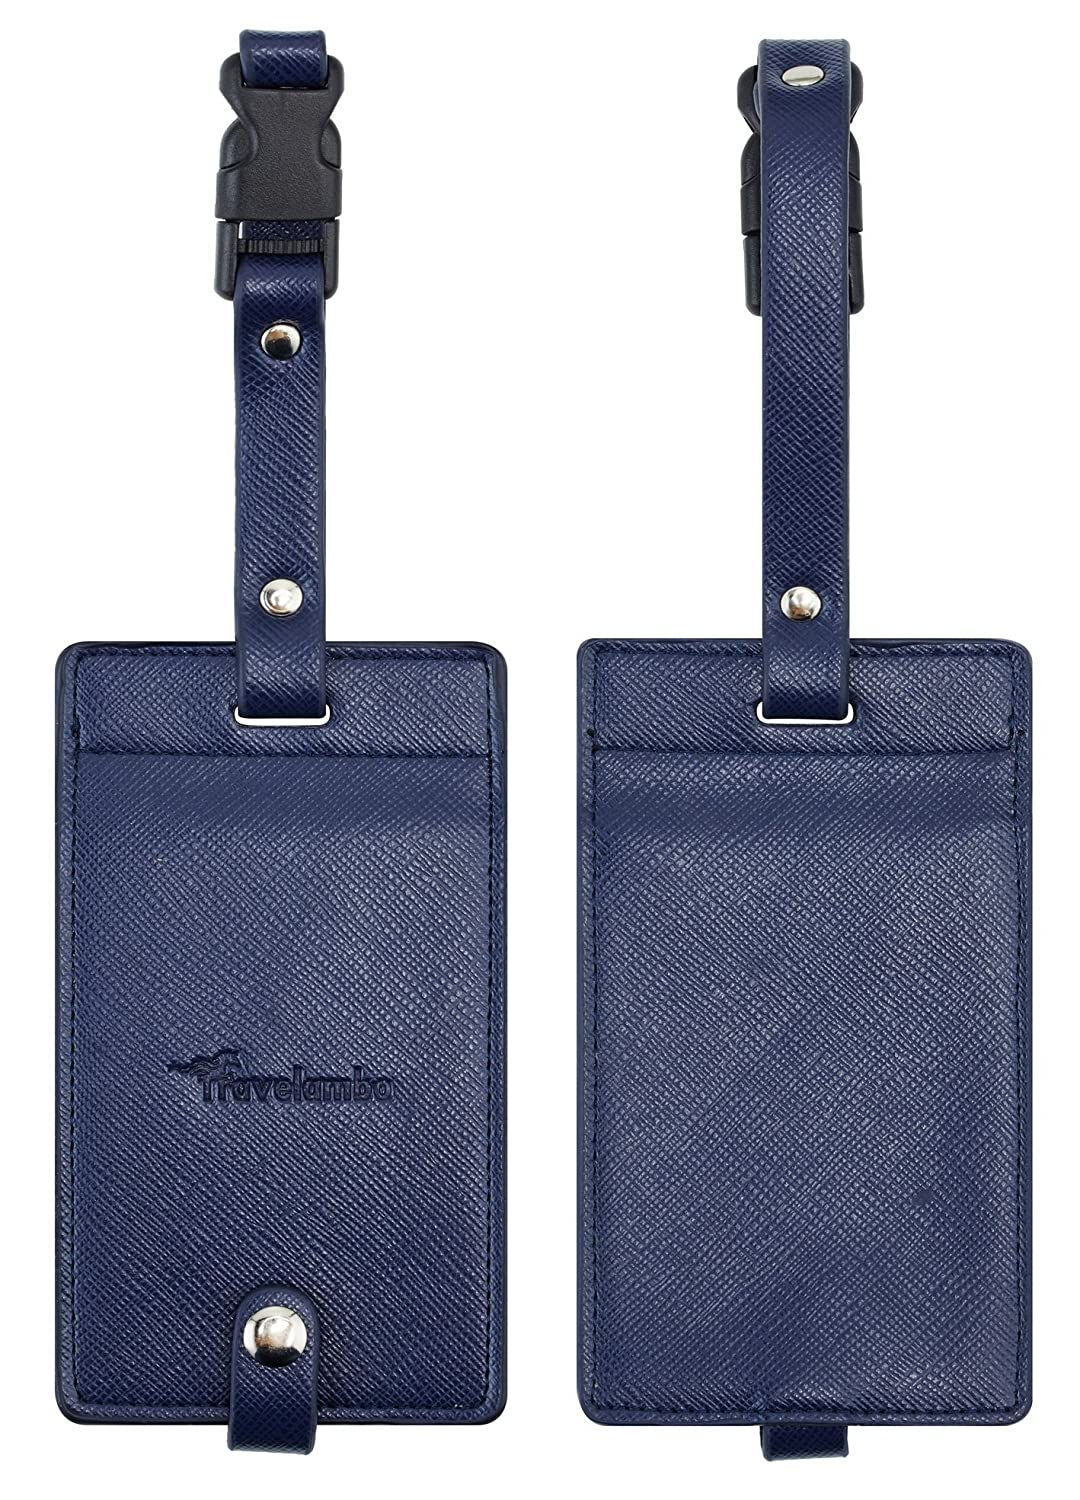 Travelambo Synethic Leather Luggage Tags & Bag Tags 2 Pieces Set Various Colors tra1216